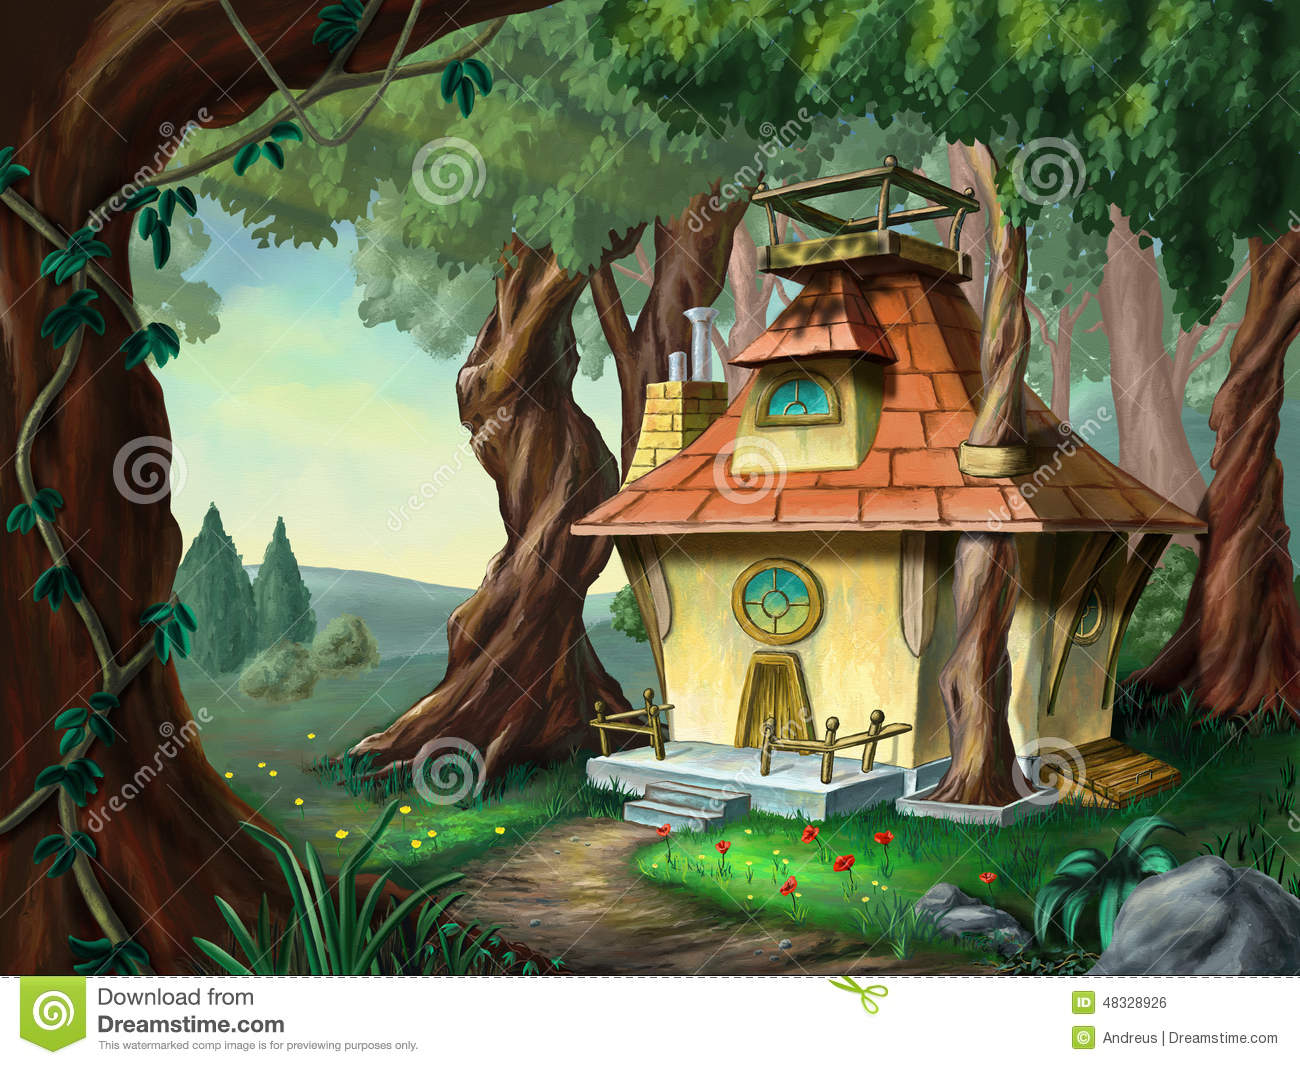 House in the woods clipart.